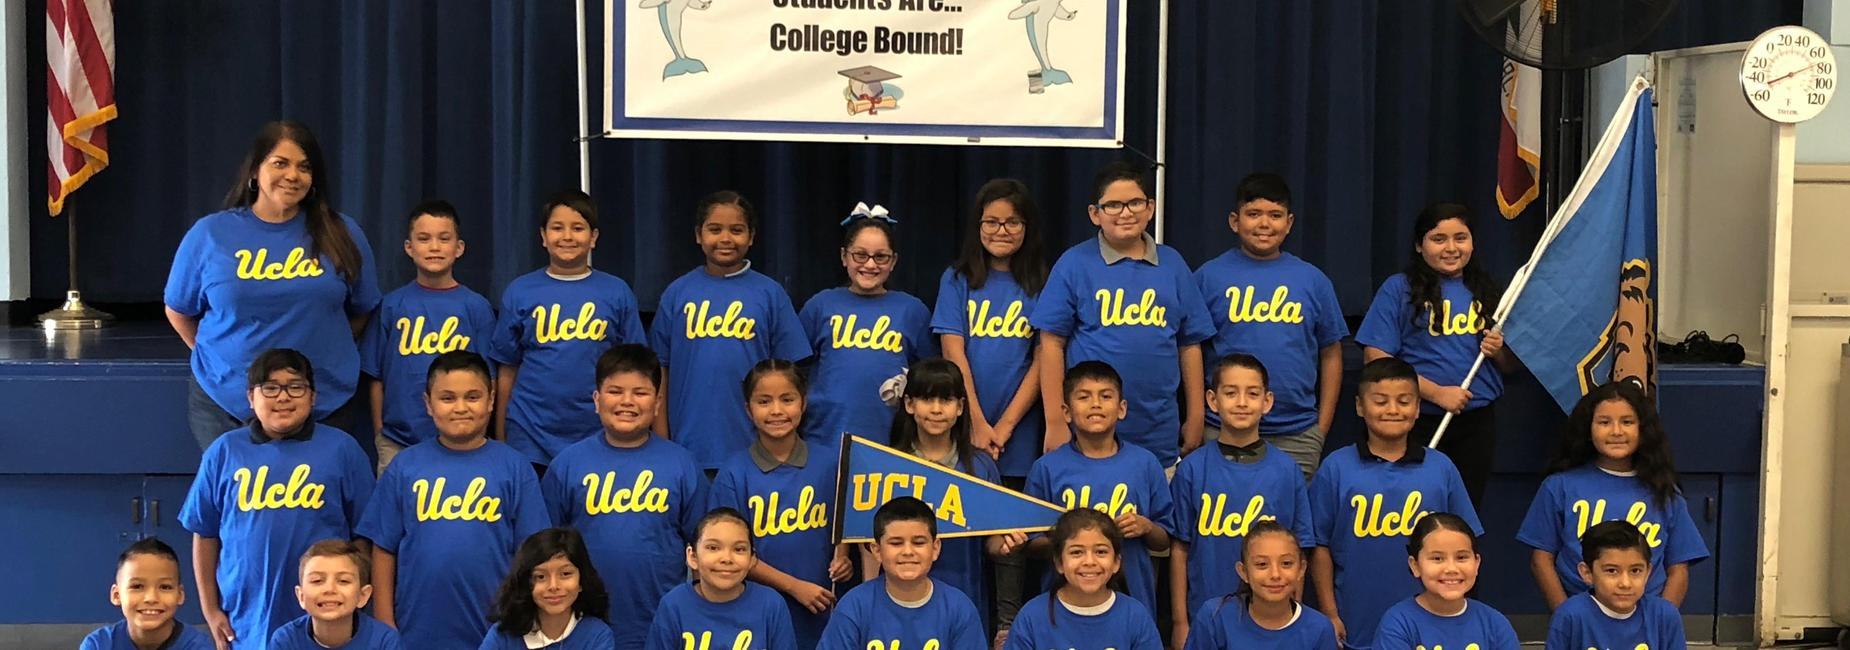 Students with UCLA College Shirts